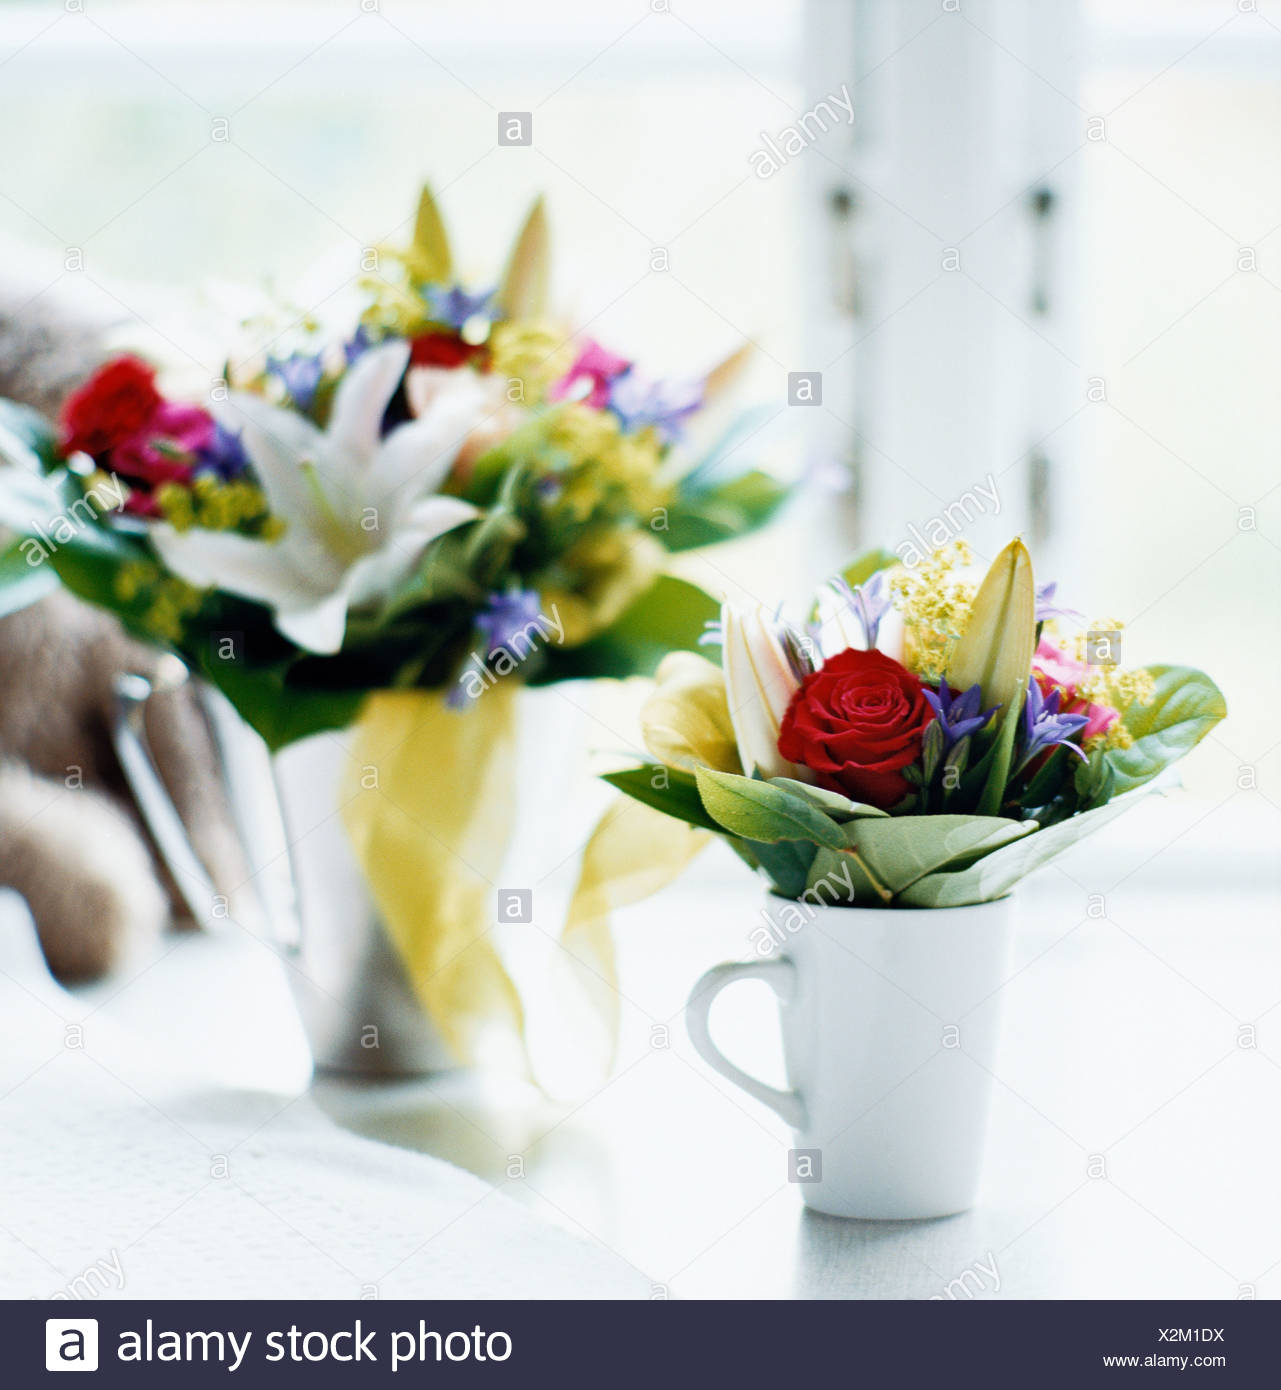 Big flower vase stock photos big flower vase stock images alamy a big and a small flower bouquet stock image izmirmasajfo